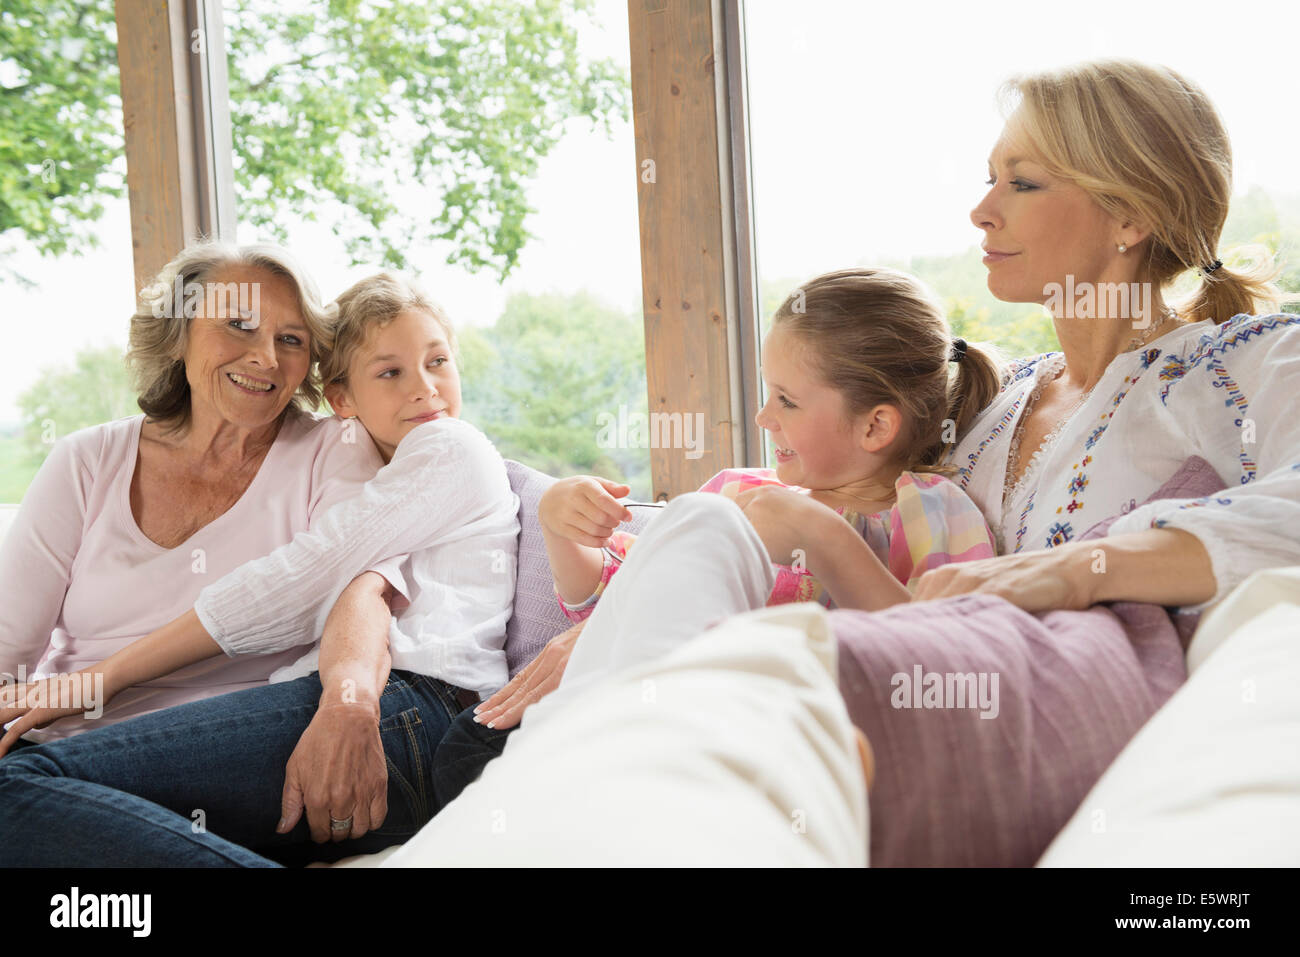 Grandmother, daughter and granddaughters on sofa - Stock Image